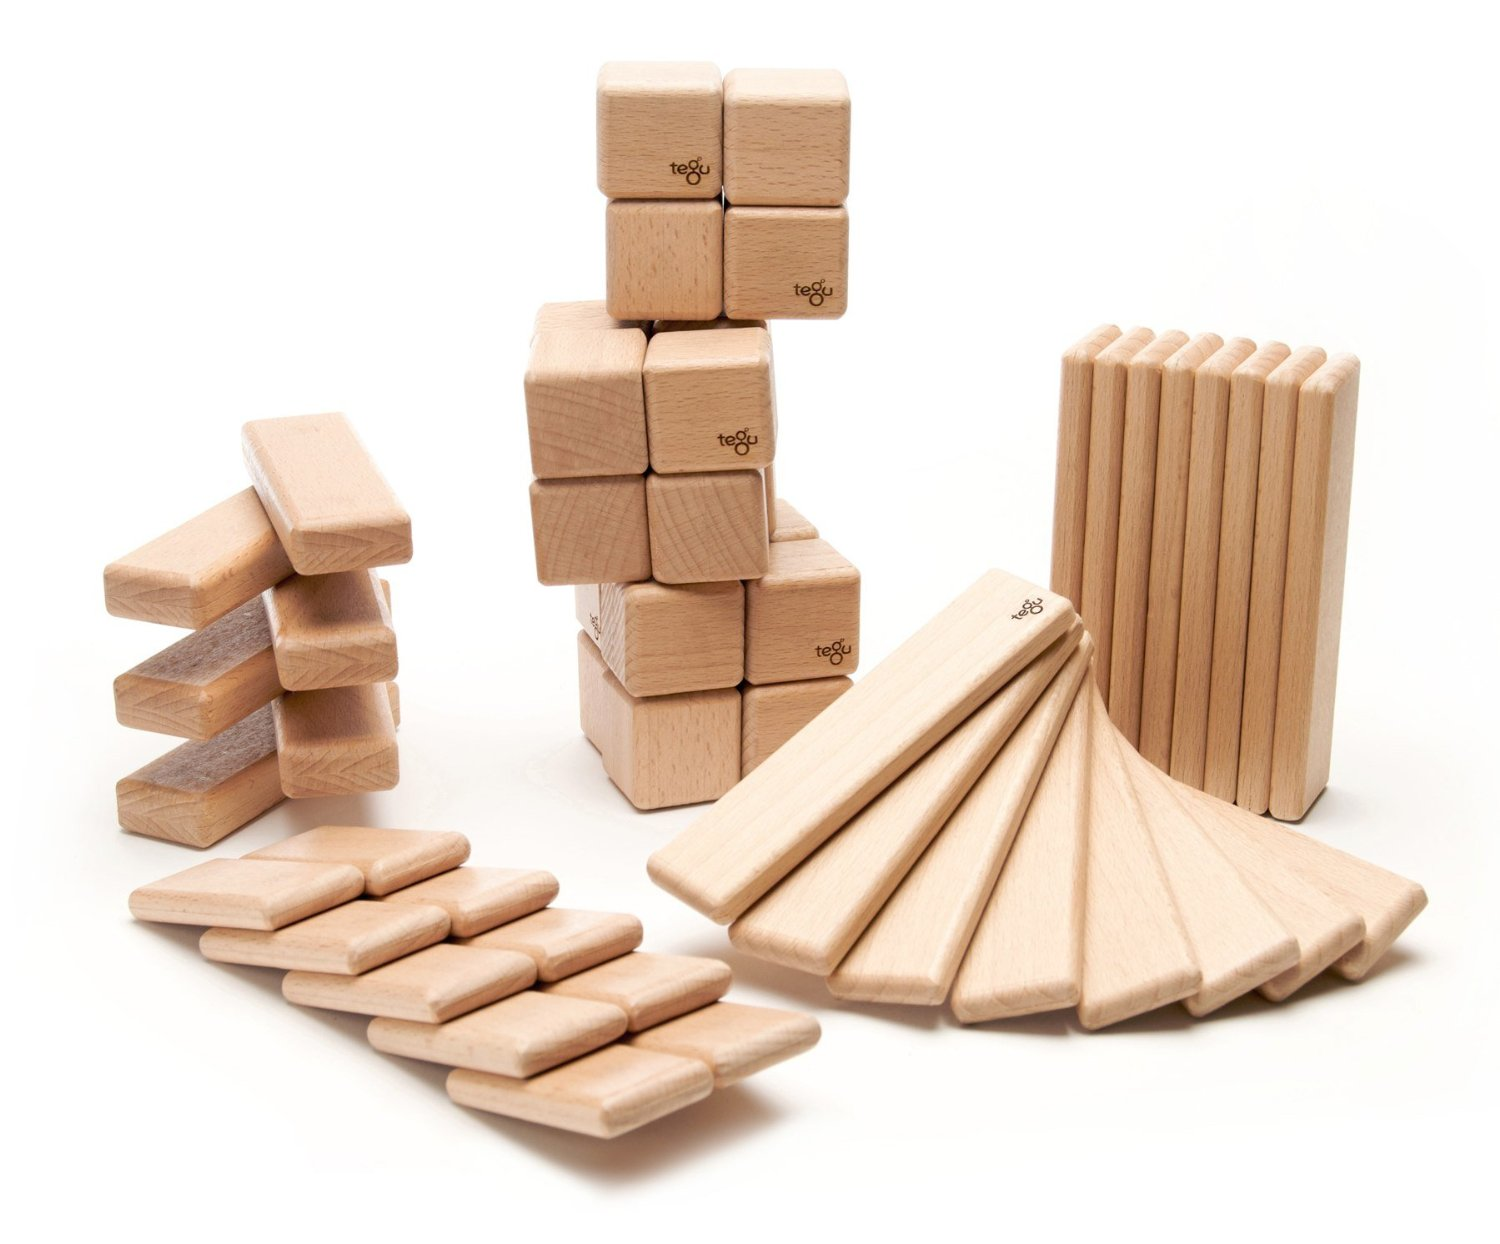 Magnetic Wooden Block Set, Original